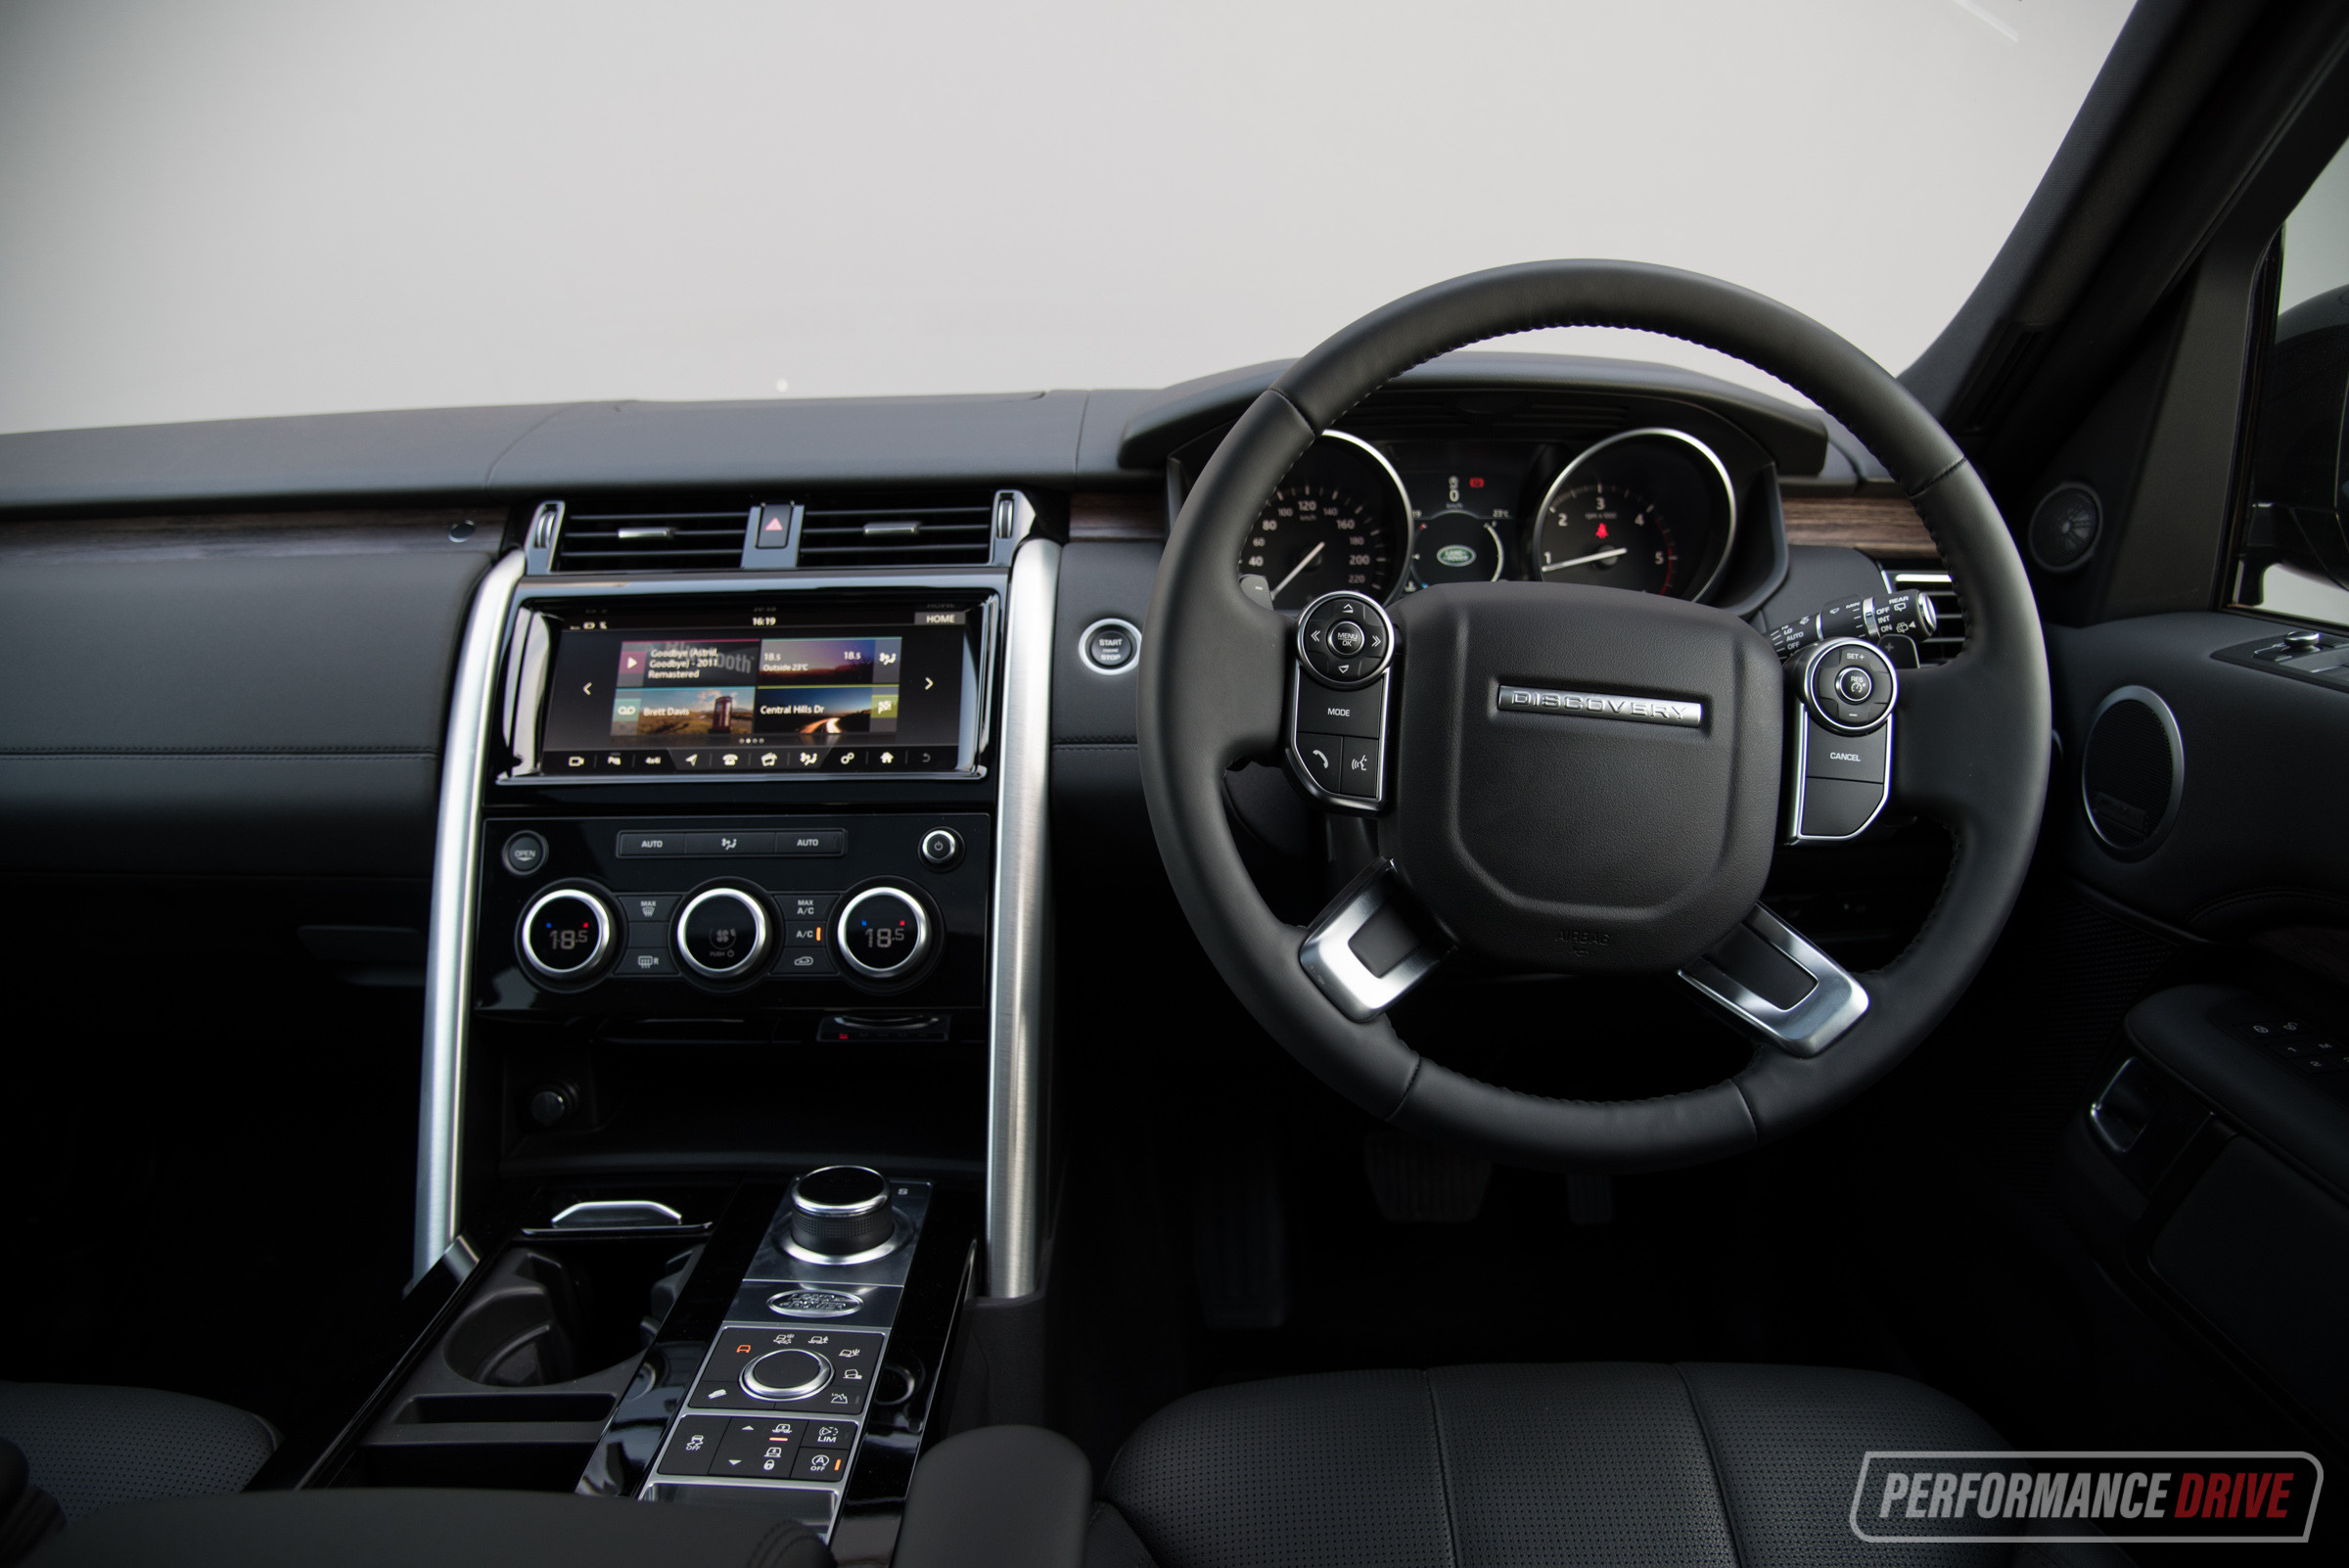 http://performancedrive.com.au/wp-content/uploads/2017/09/2017-Land-Rover-Discovery-HSE-Sd4-interior.jpg